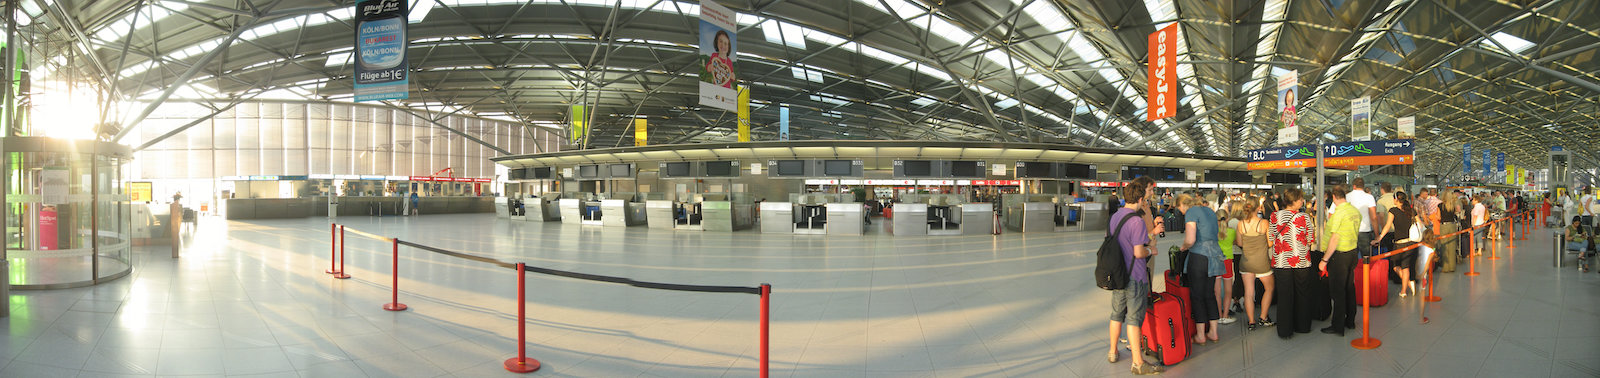 Koln/Bonn Airport, Germany